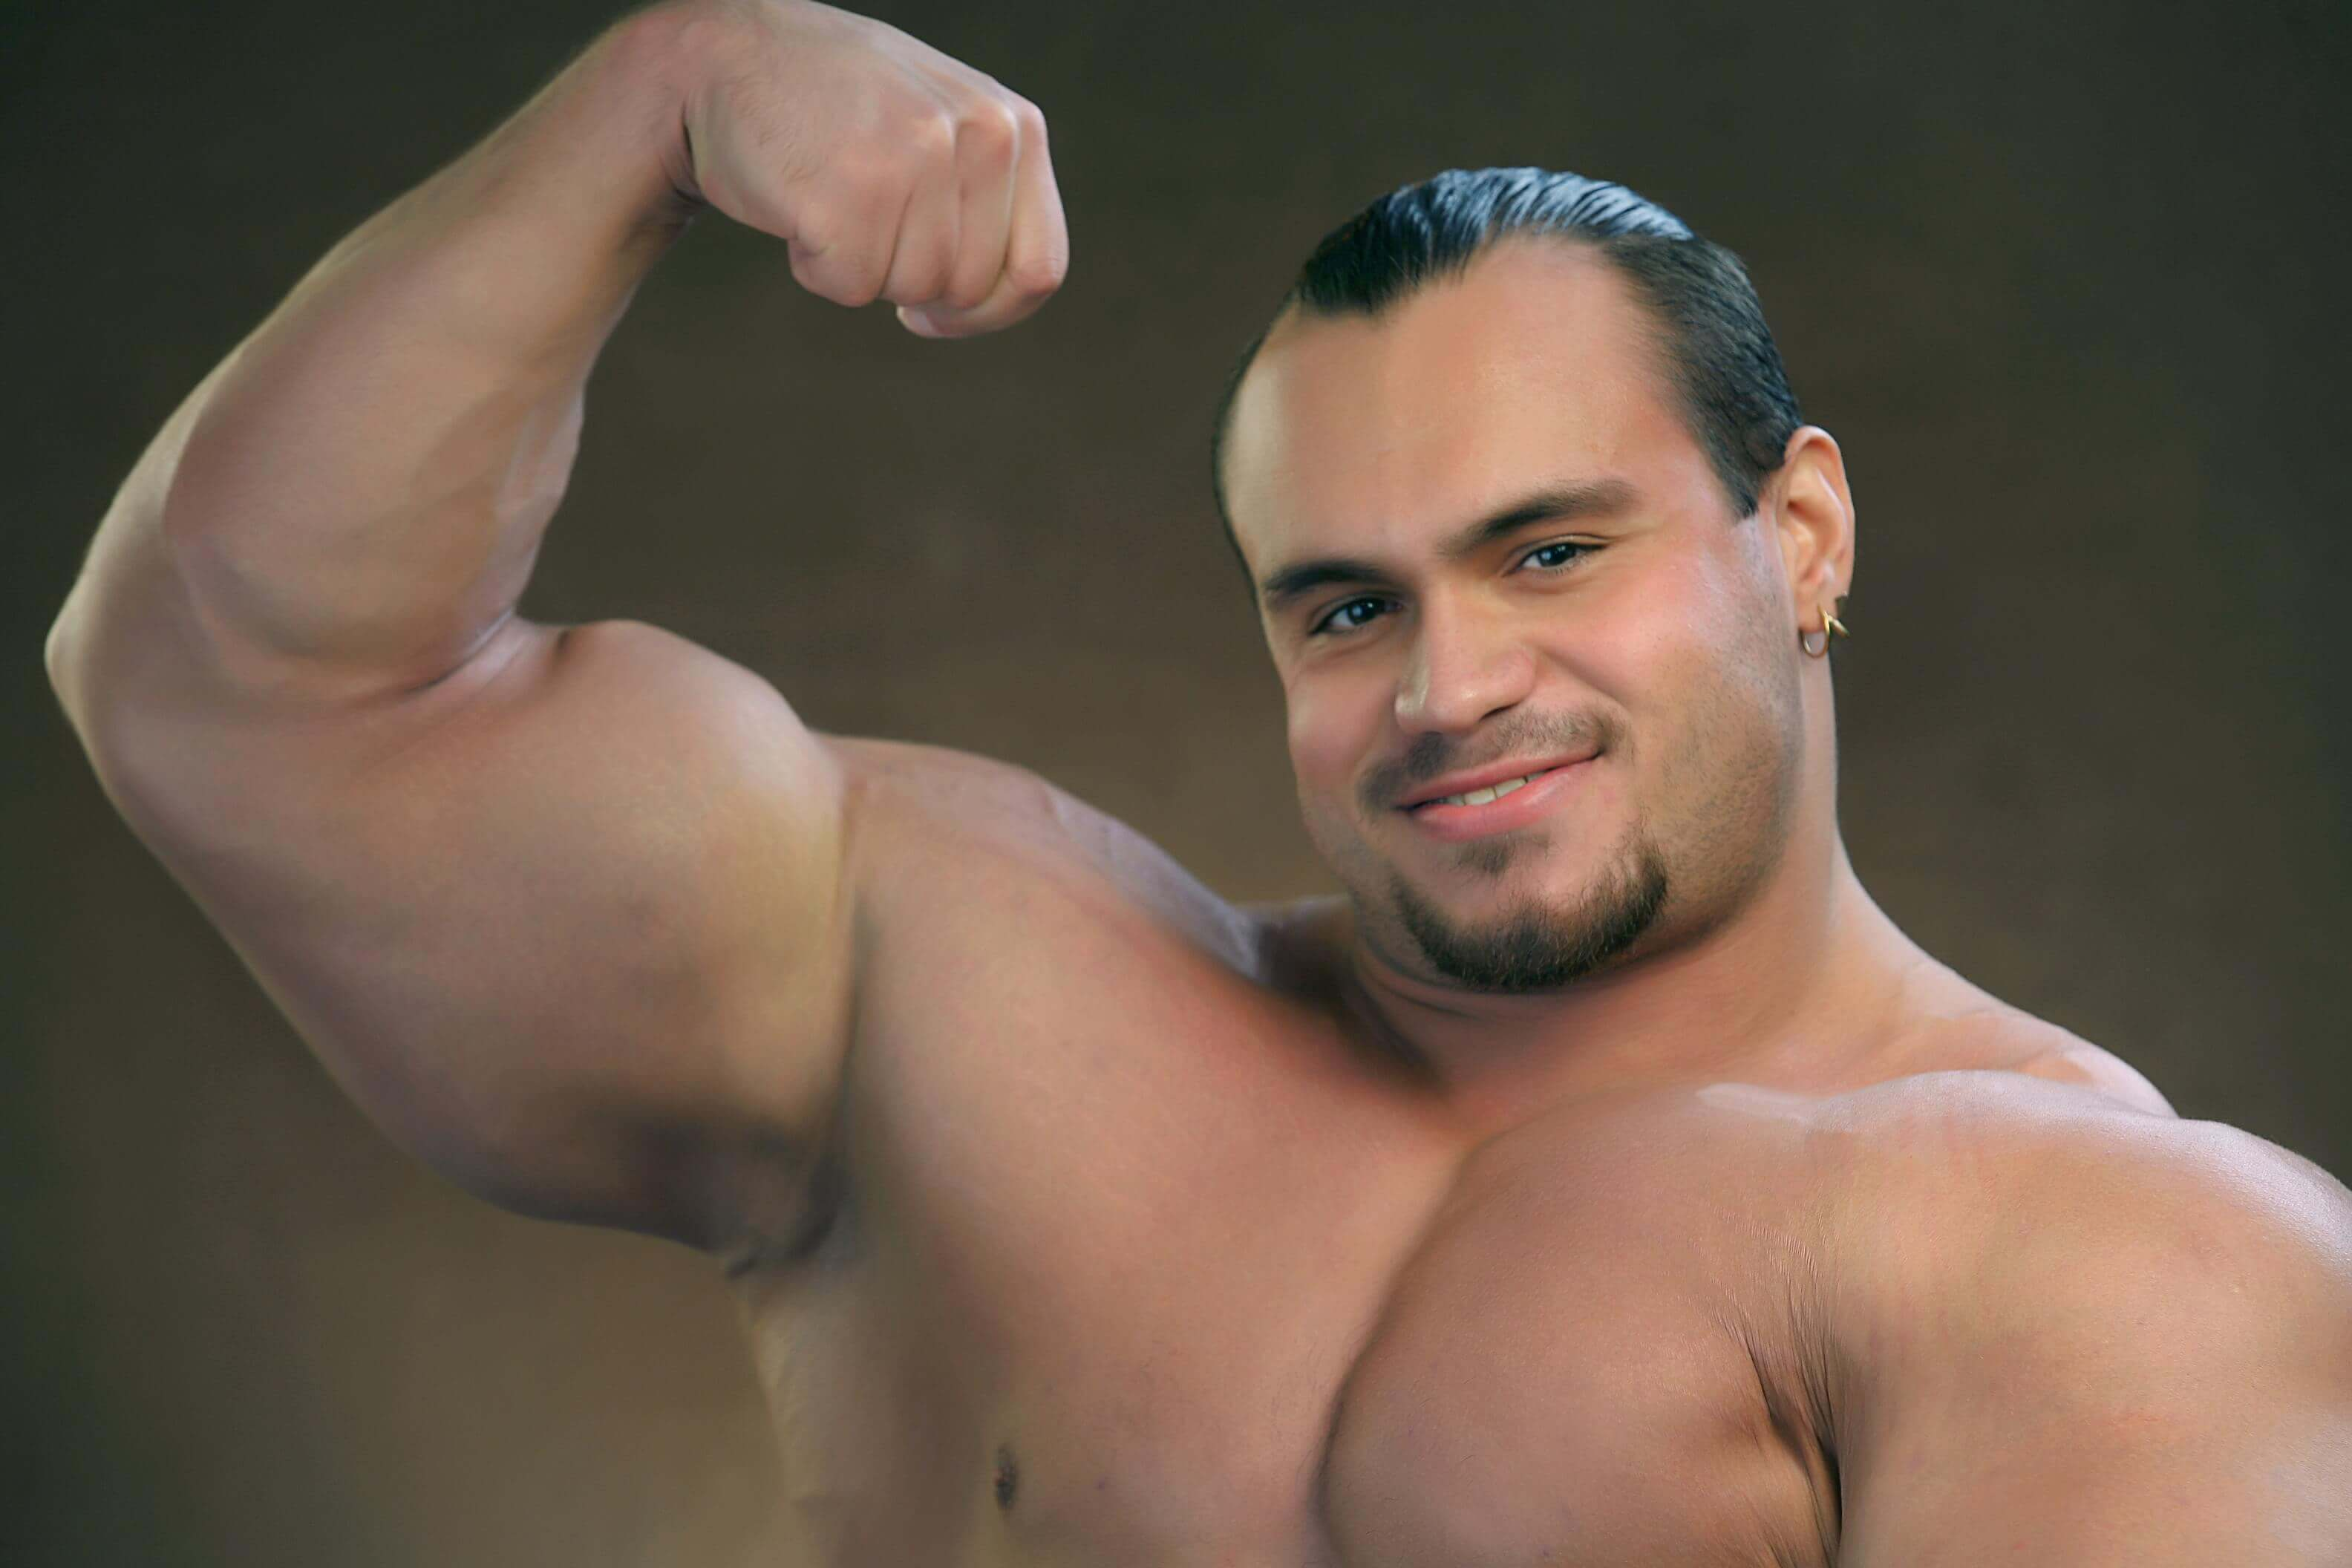 Do bodybuilders have erection problems?